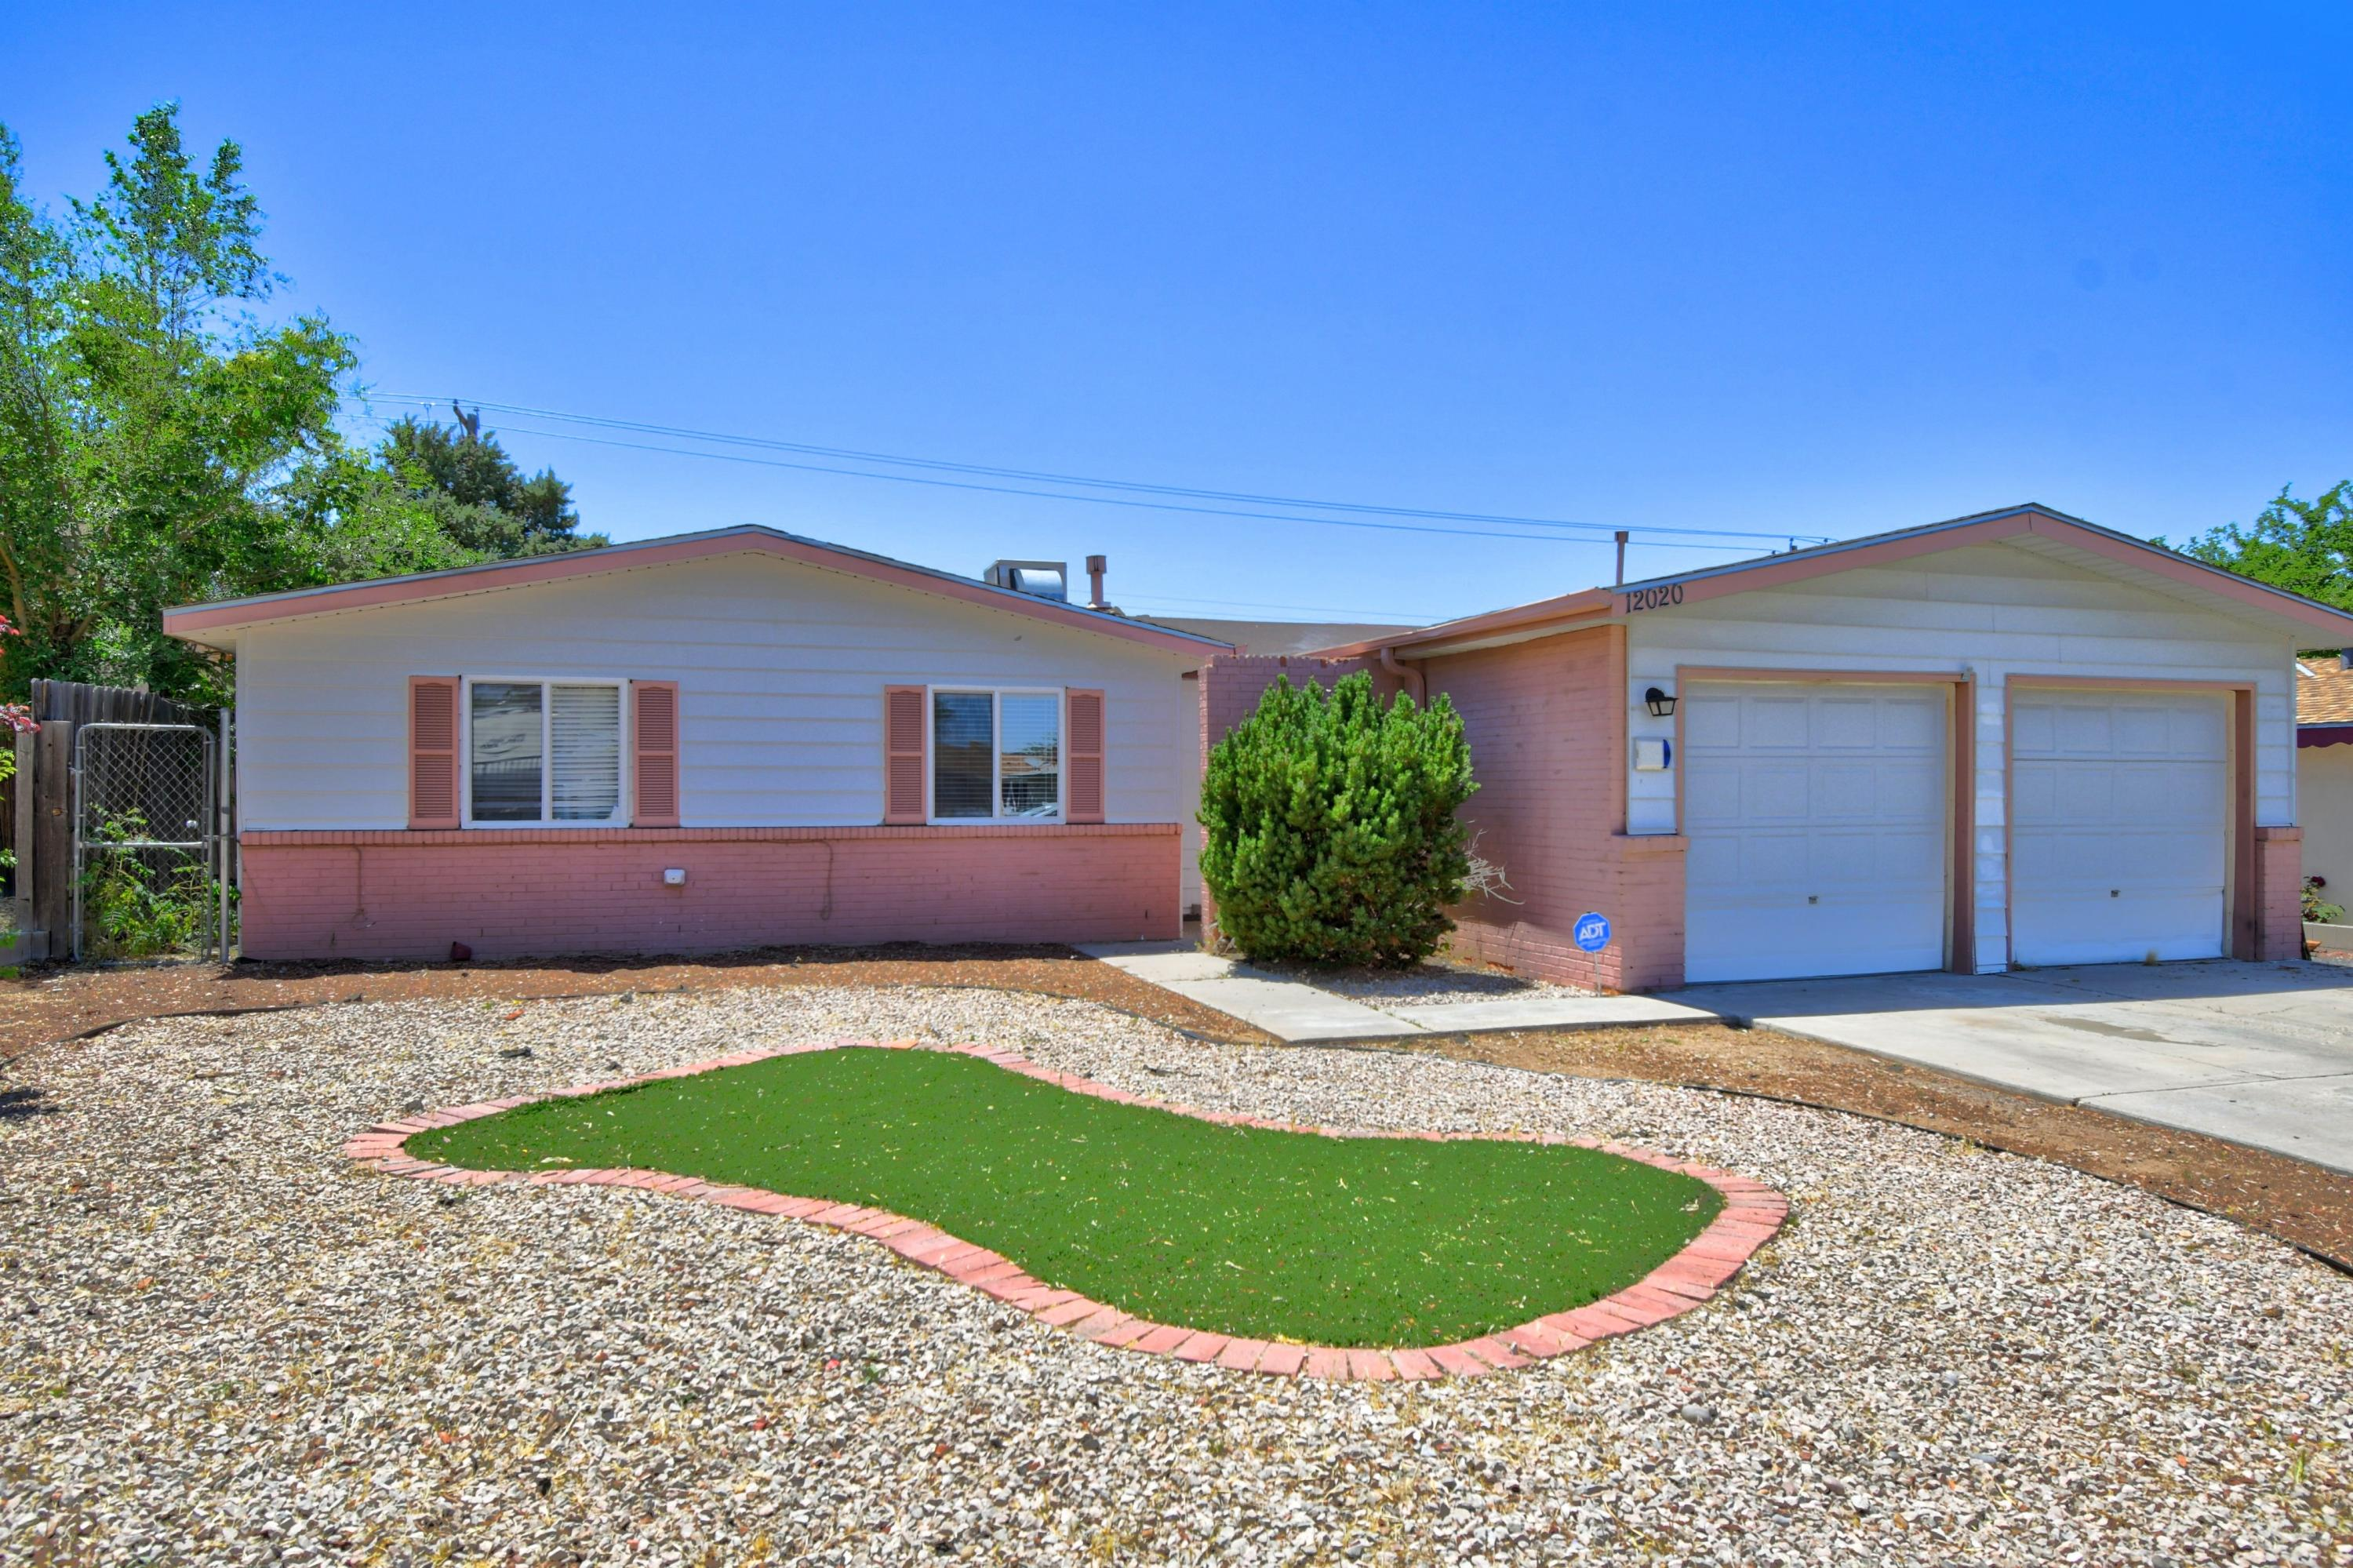 12020 MORROW Avenue NE, Albuquerque, NM 87112 - Albuquerque, NM real estate listing